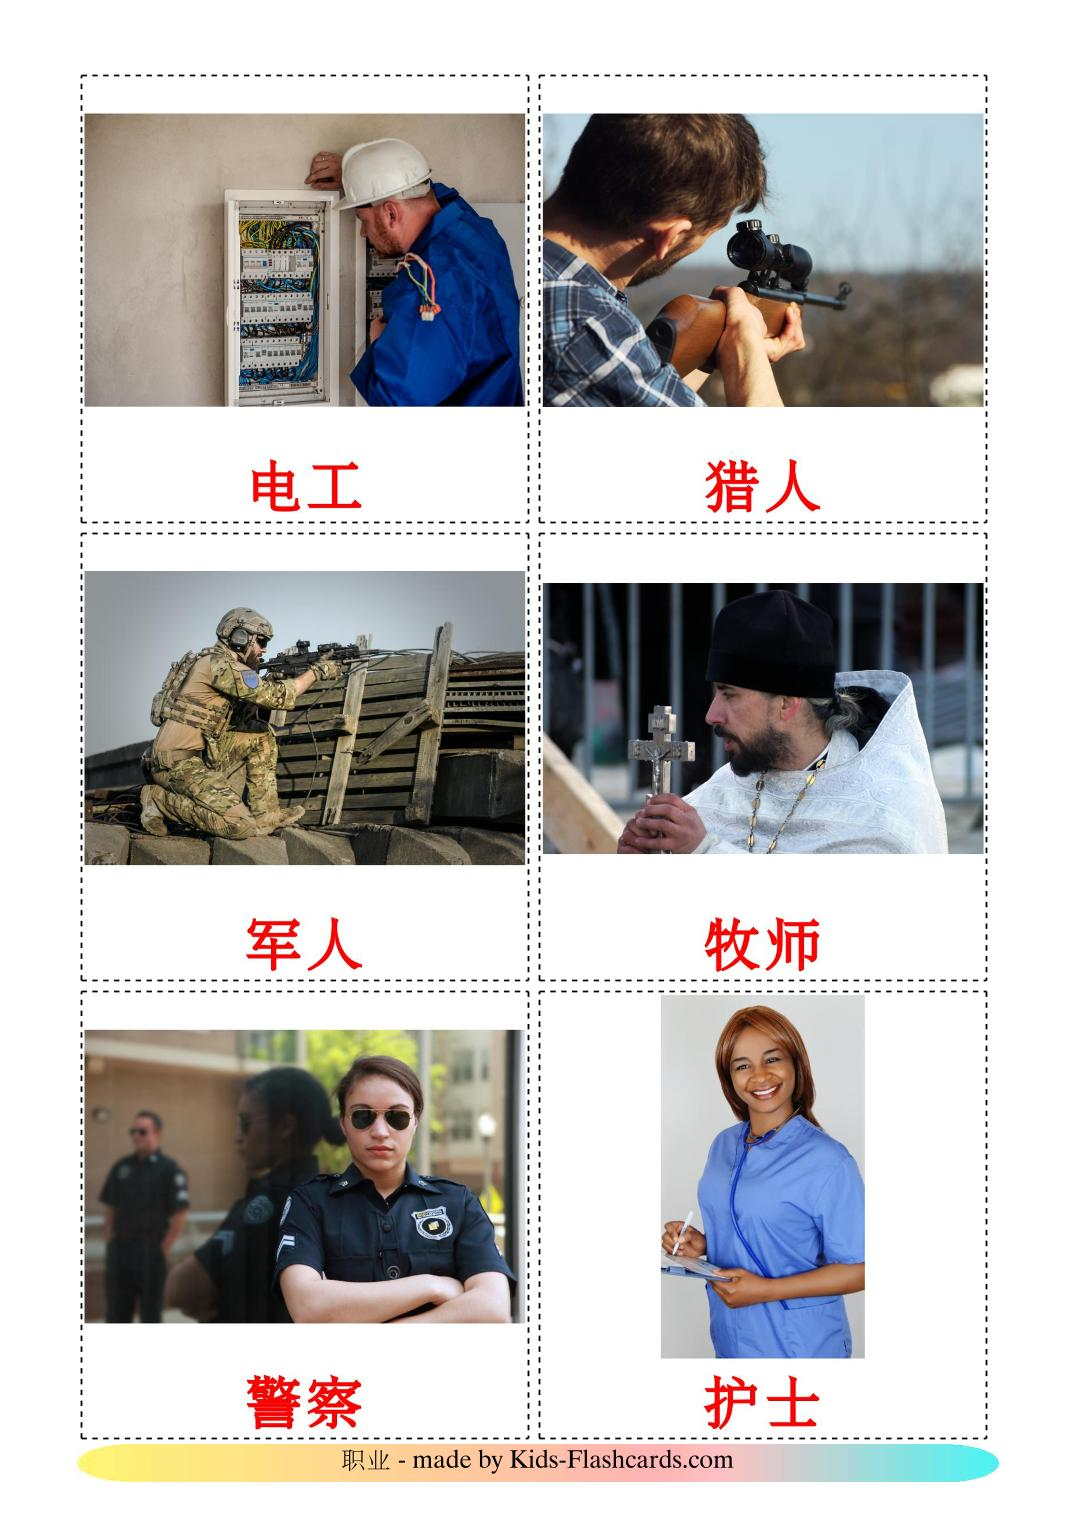 Jobs and Occupations - 51 Free Printable chinese(Simplified) Flashcards